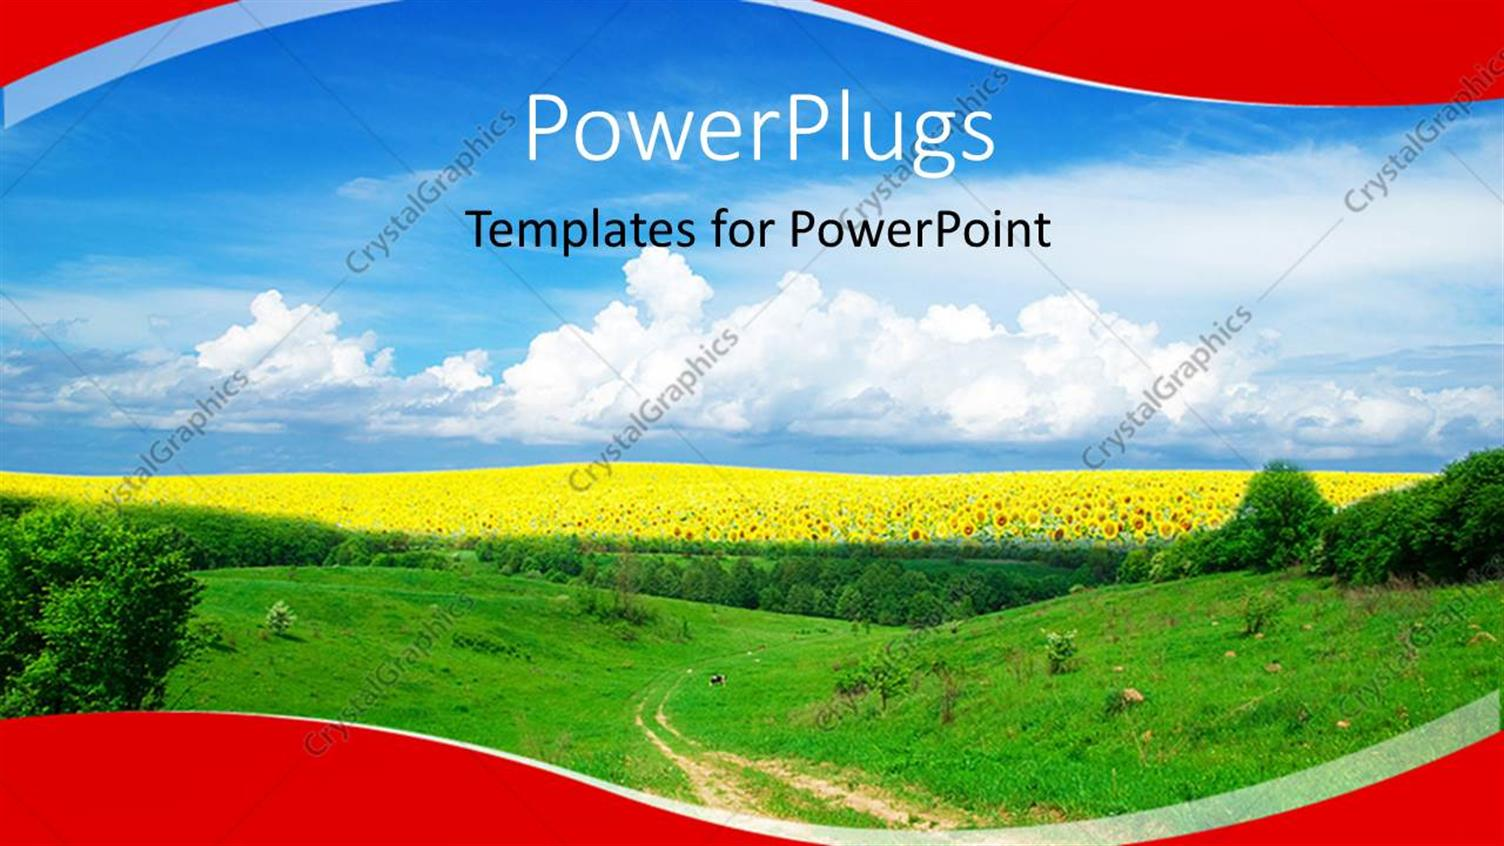 PowerPoint Template Displaying a Landscape View of a Plain Green Field with Sun Flowers